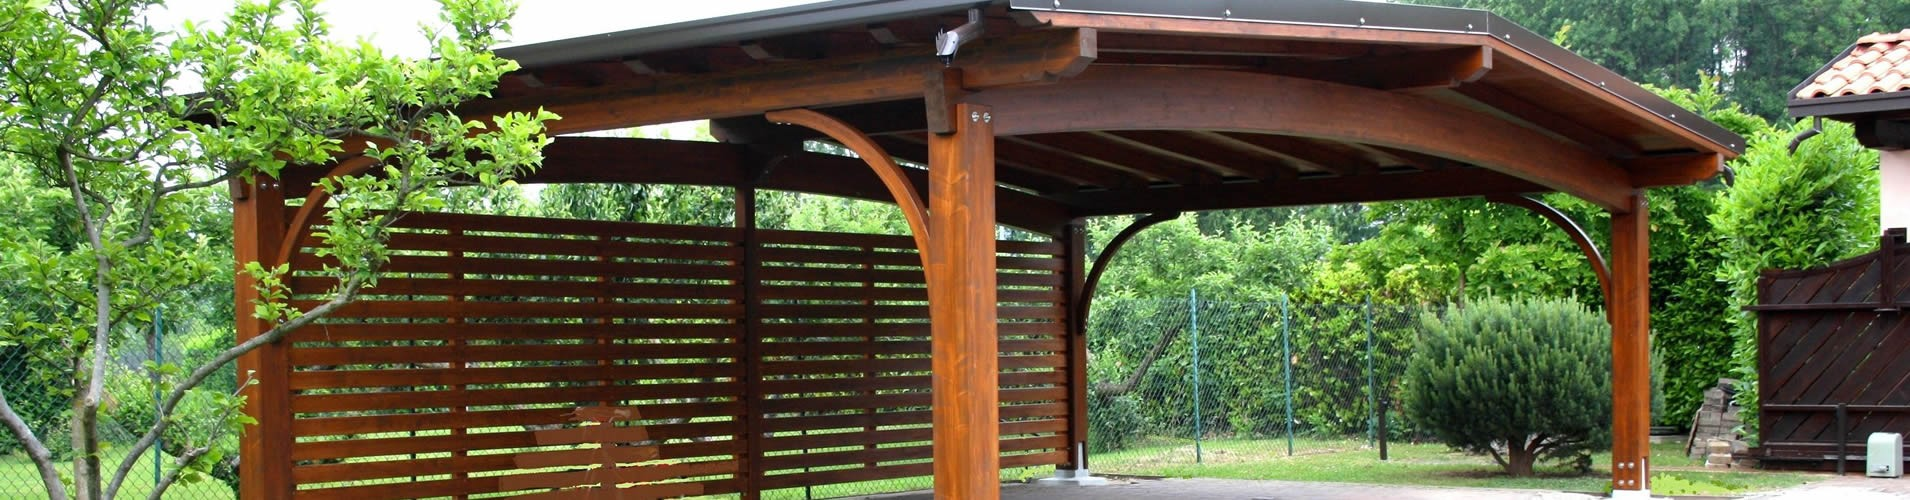 Custom Carports Nashville, TN